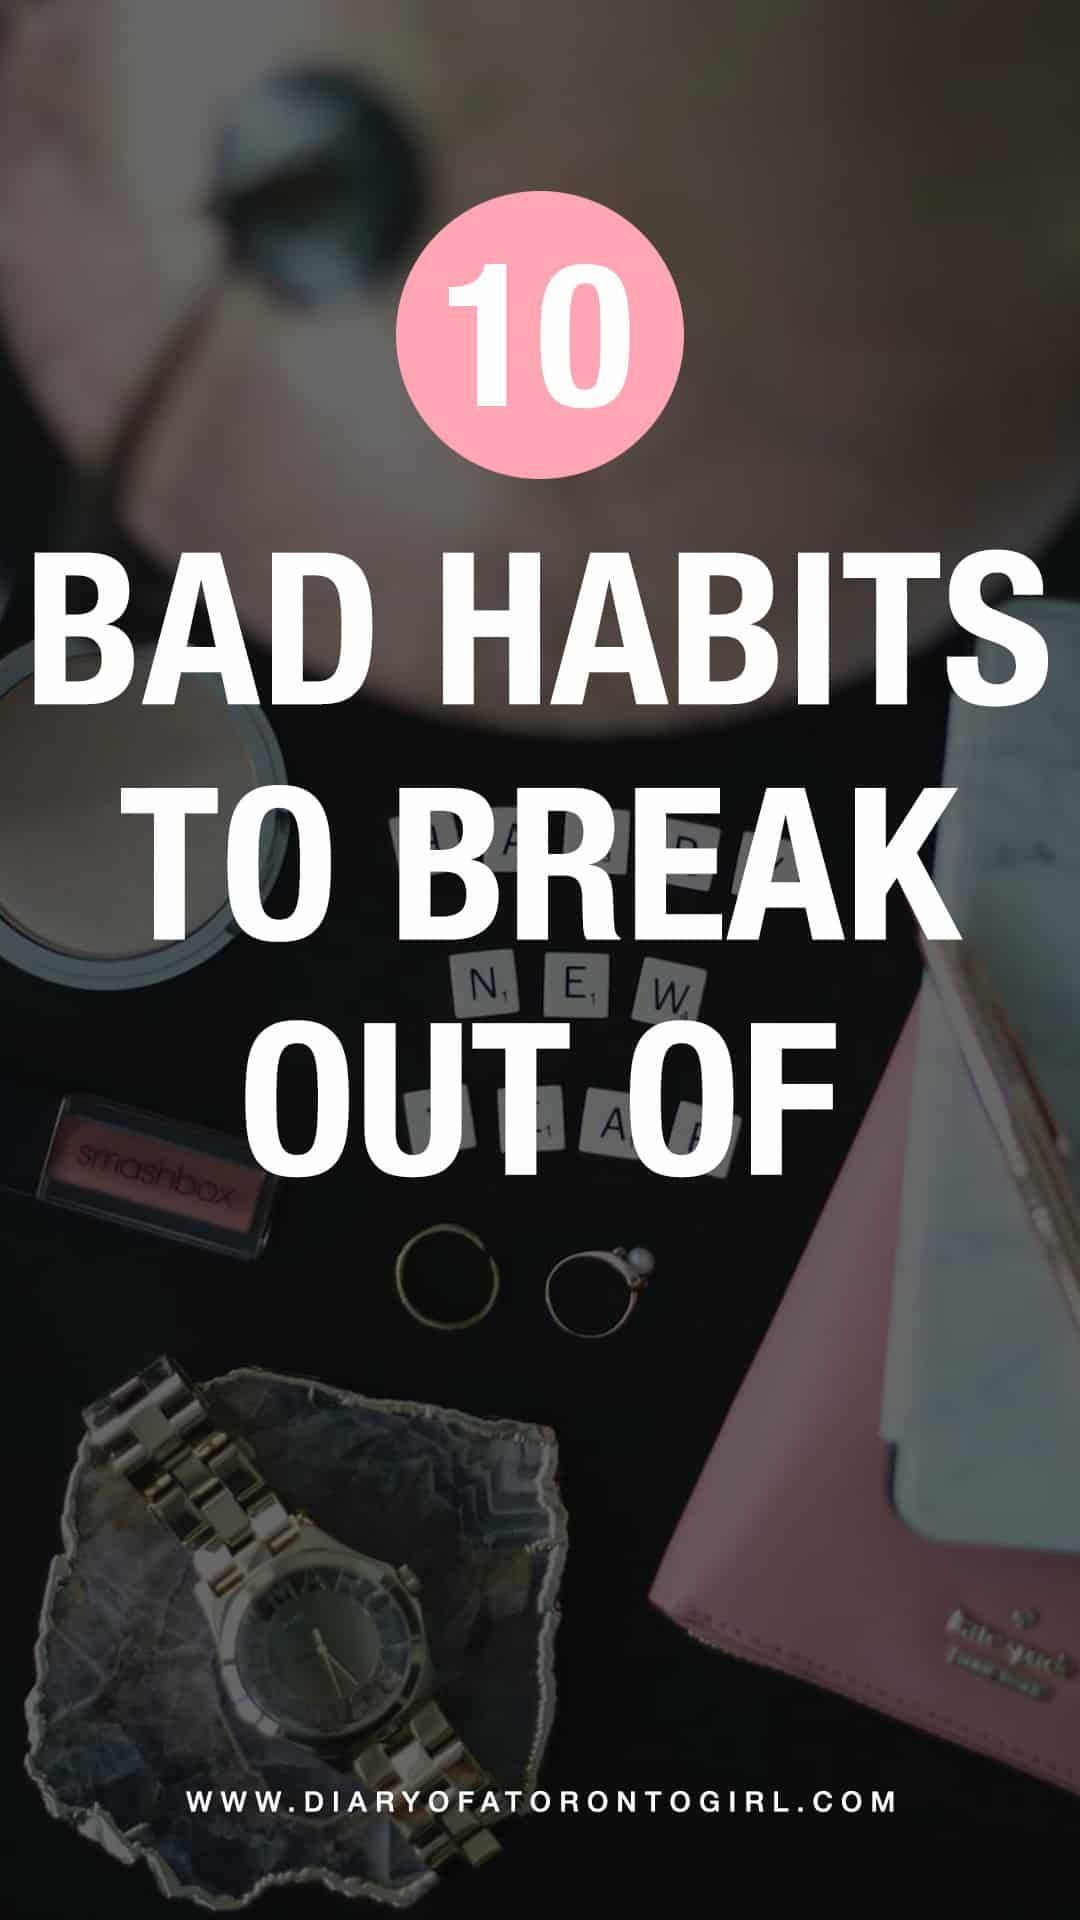 Bad habits are difficult to break, but it's all for the better. Here are some bad habits you need to break out of this year!